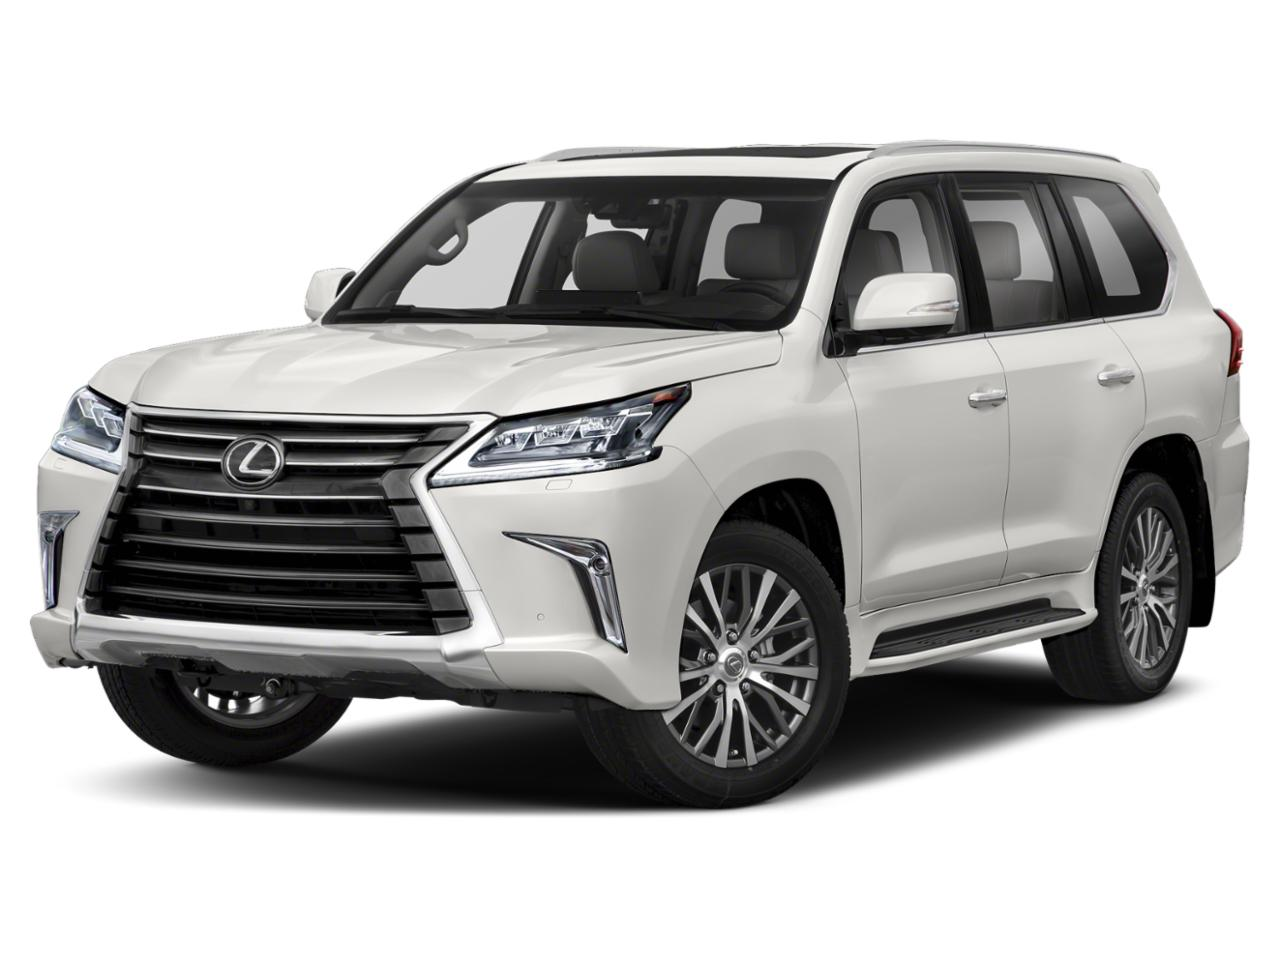 2020 Lexus LX Vehicle Photo in Appleton, WI 54913